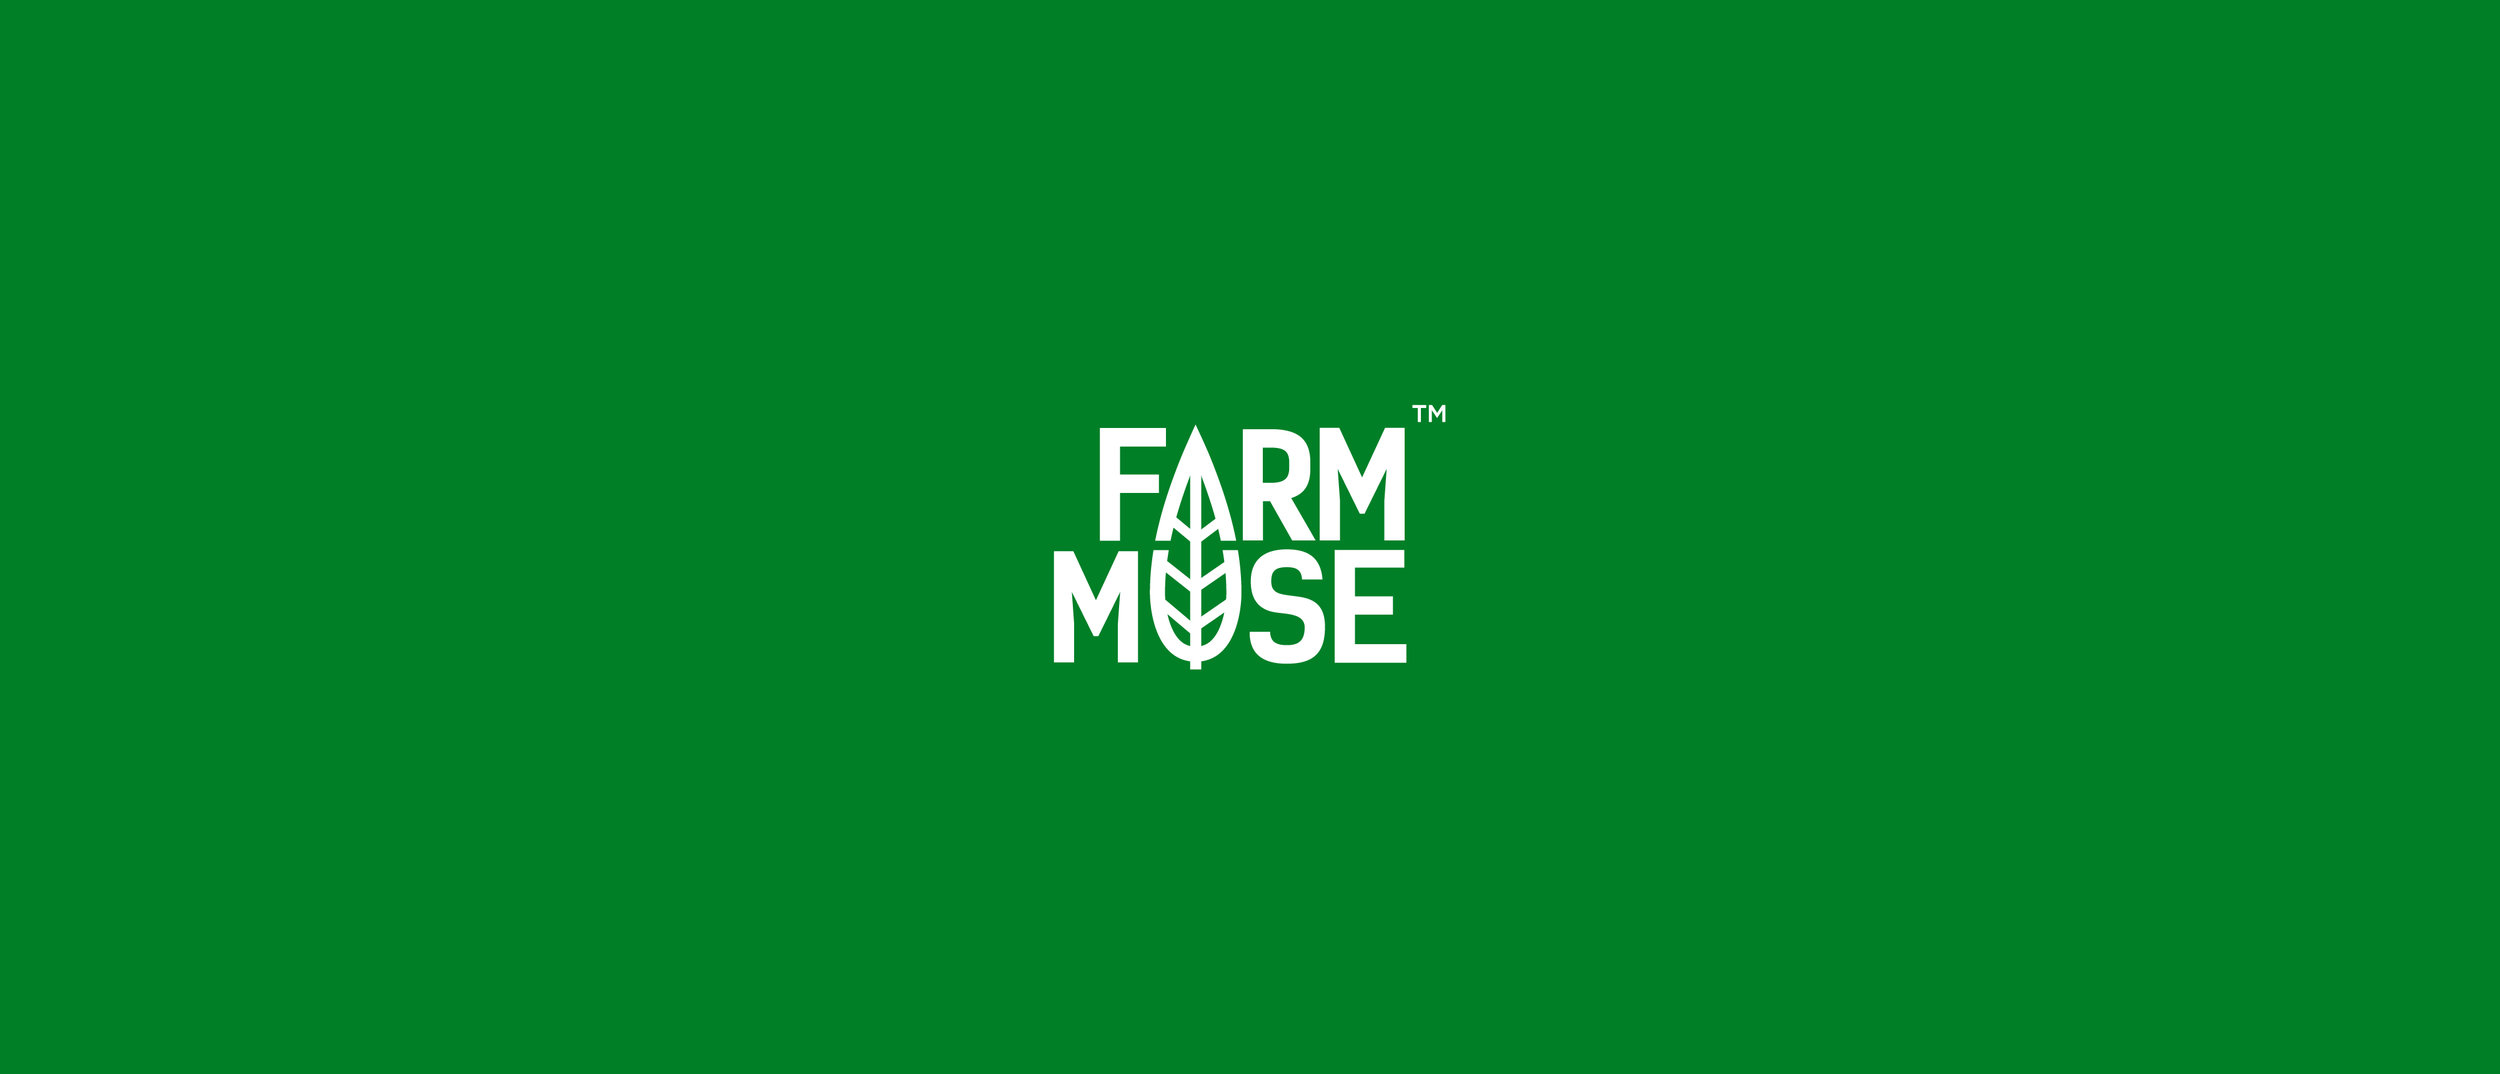 FarmMuse | Agricultural Supply Company | 2016